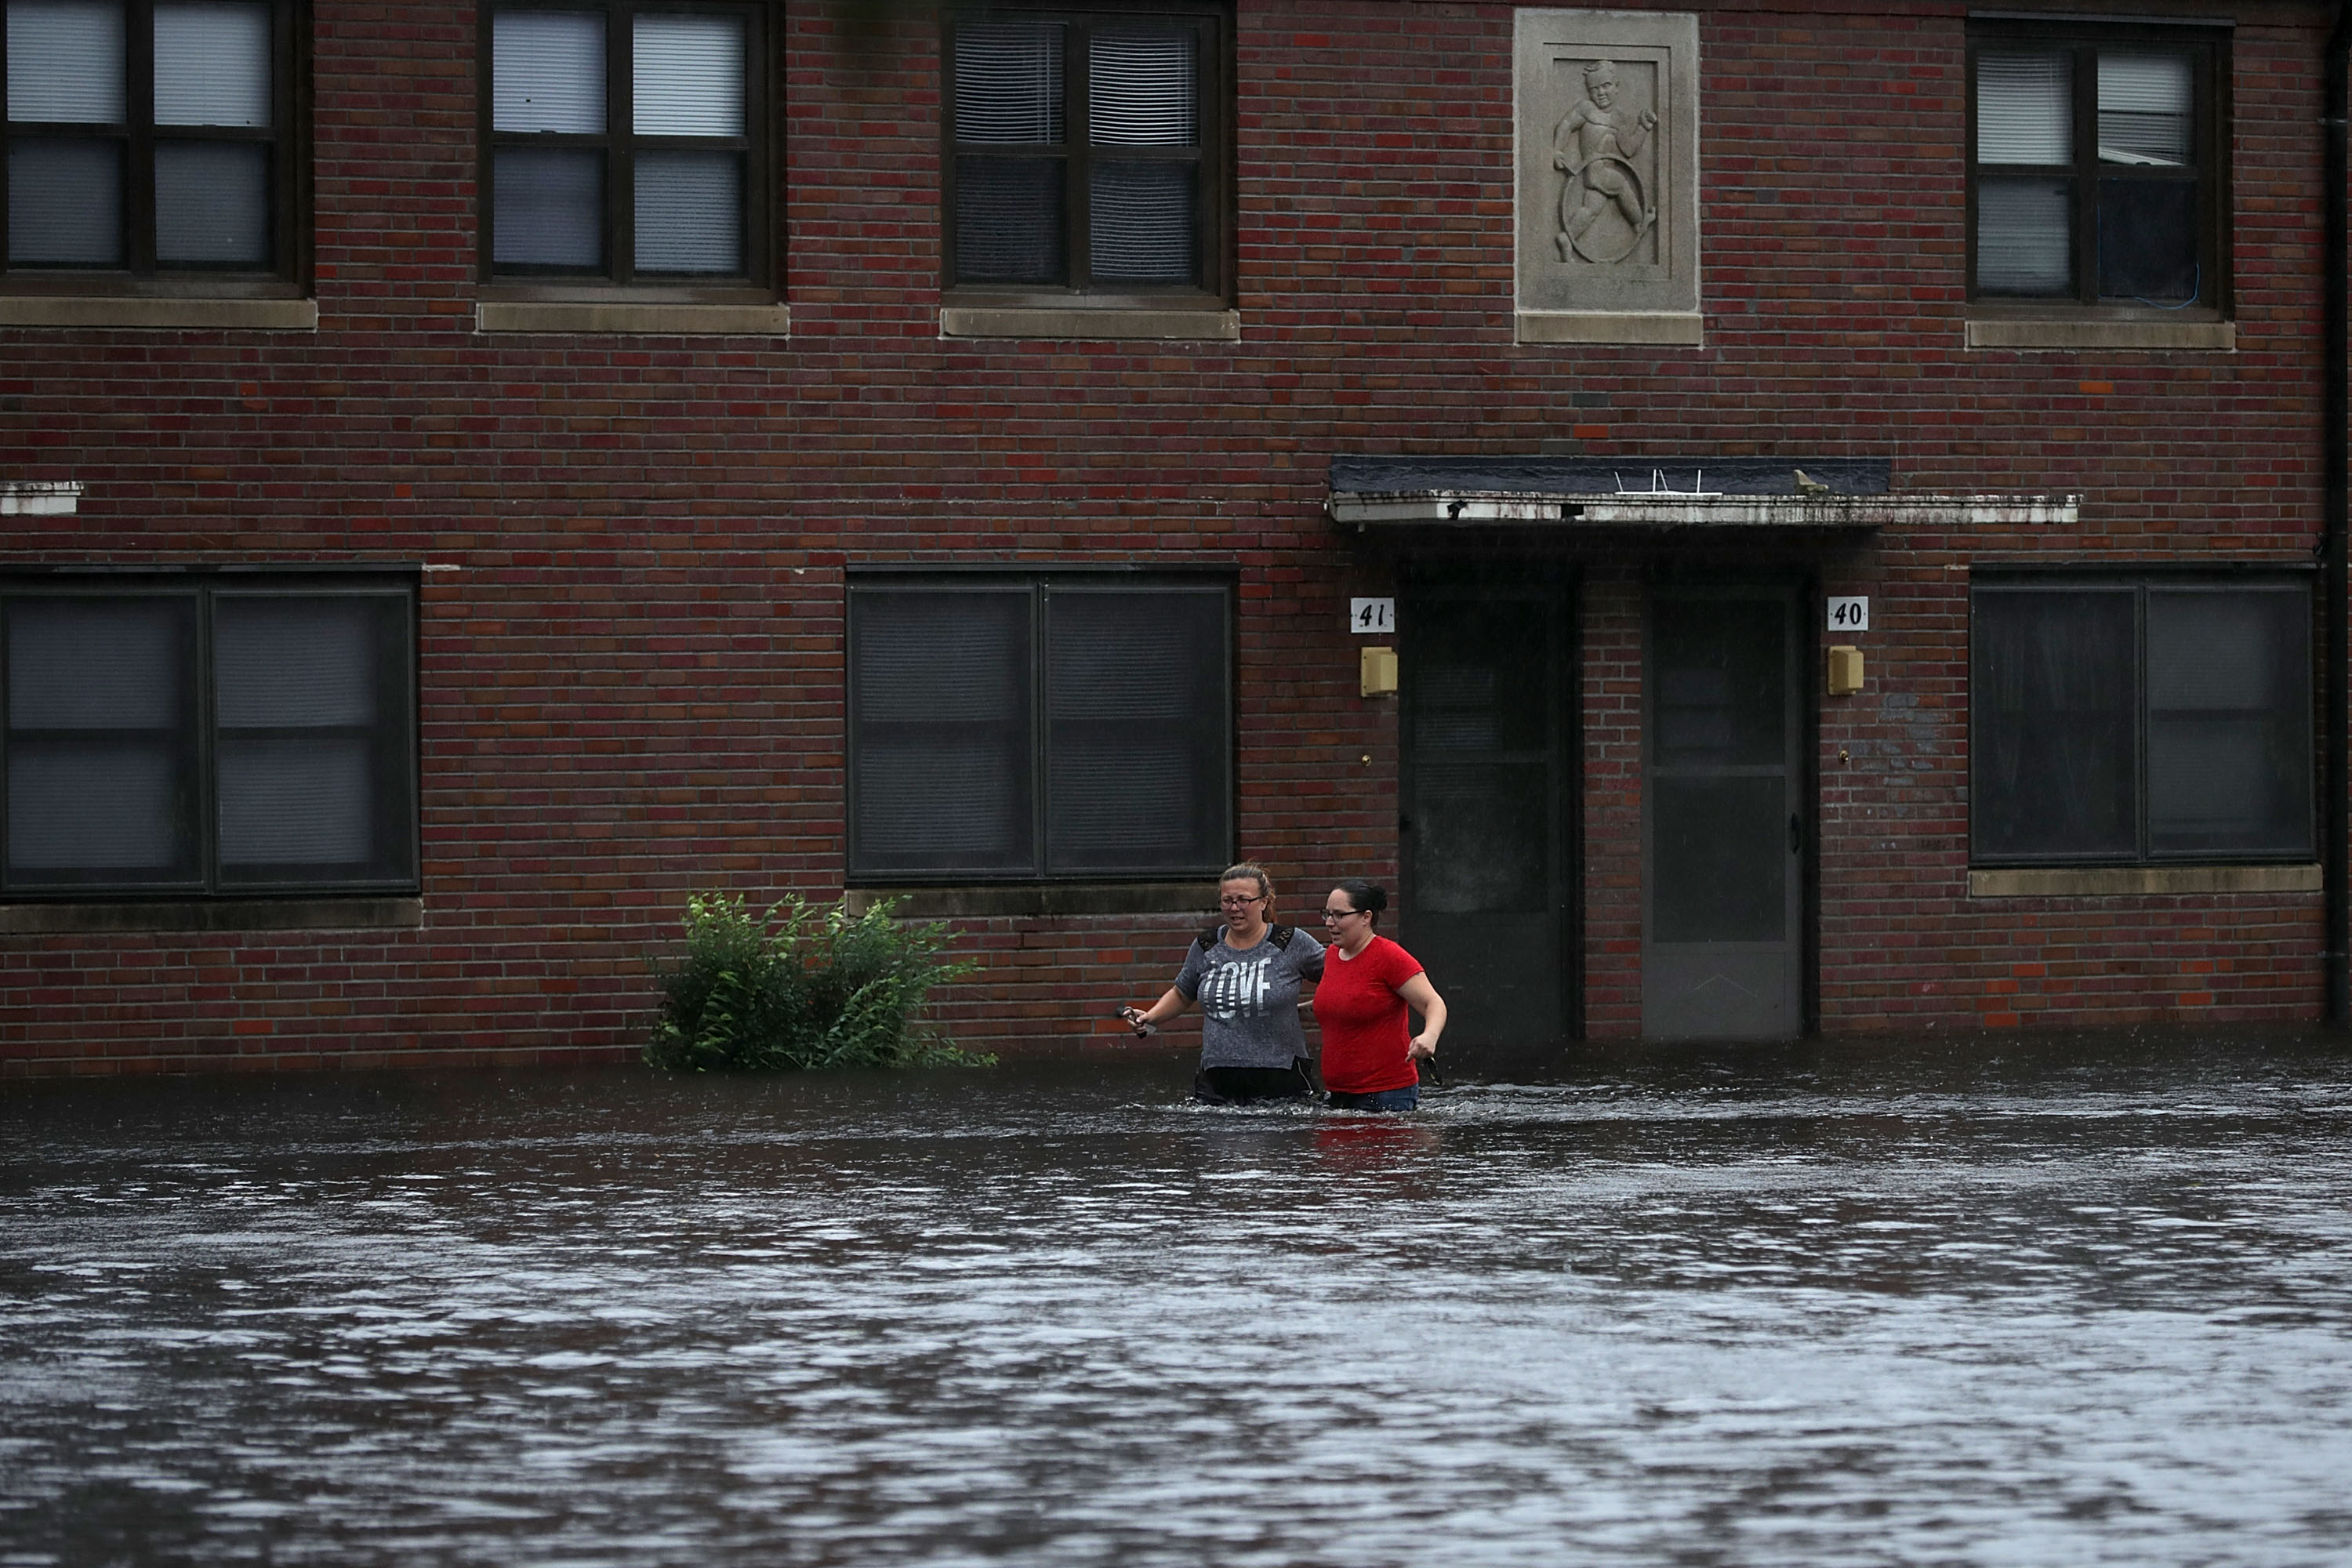 Residents wade through deep floodwater to retrieve belongings from the Trent Court public housing apartments after the Neuse River went over its banks during Hurricane Florence September 13, 2018 in New Bern, United States. Coastal cities in North Carolina, South Carolina and Virginia are under evacuation orders as the Category 2 hurricane approaches the United States.